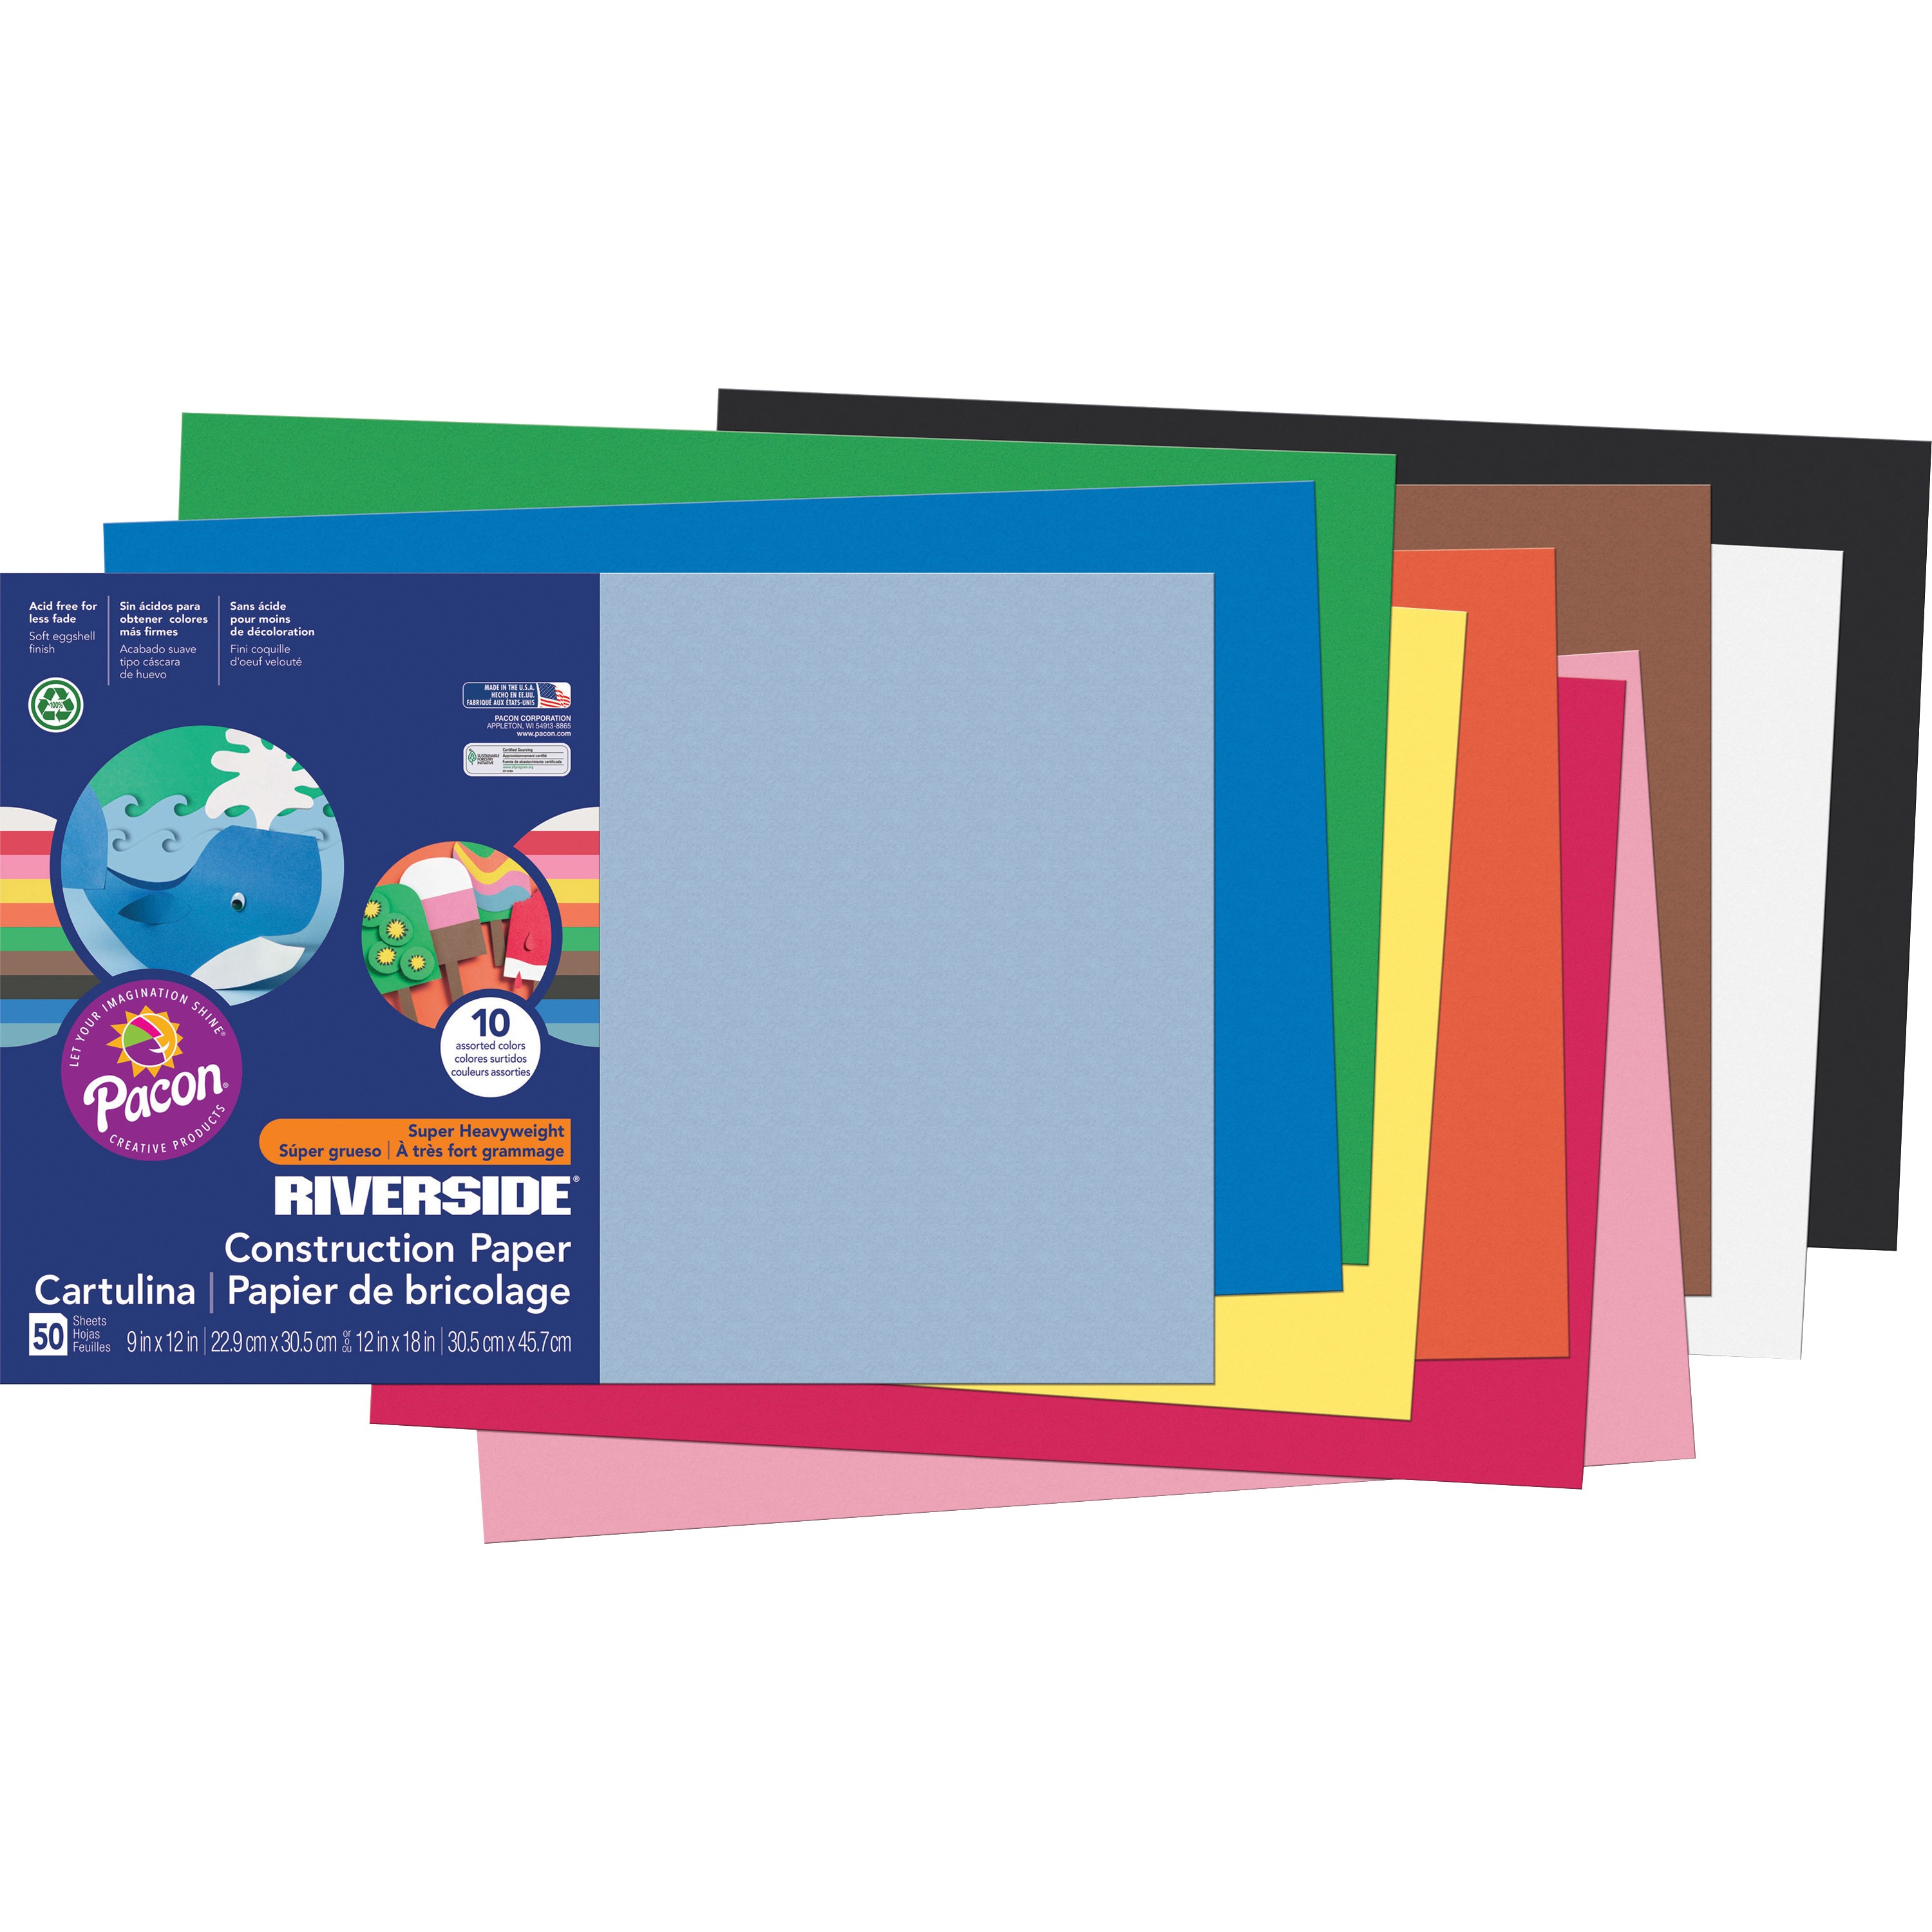 "Riverside 3D Construction Paper, Fade Resistant, 12"" x 18"", Assorted, 50 Sheets"